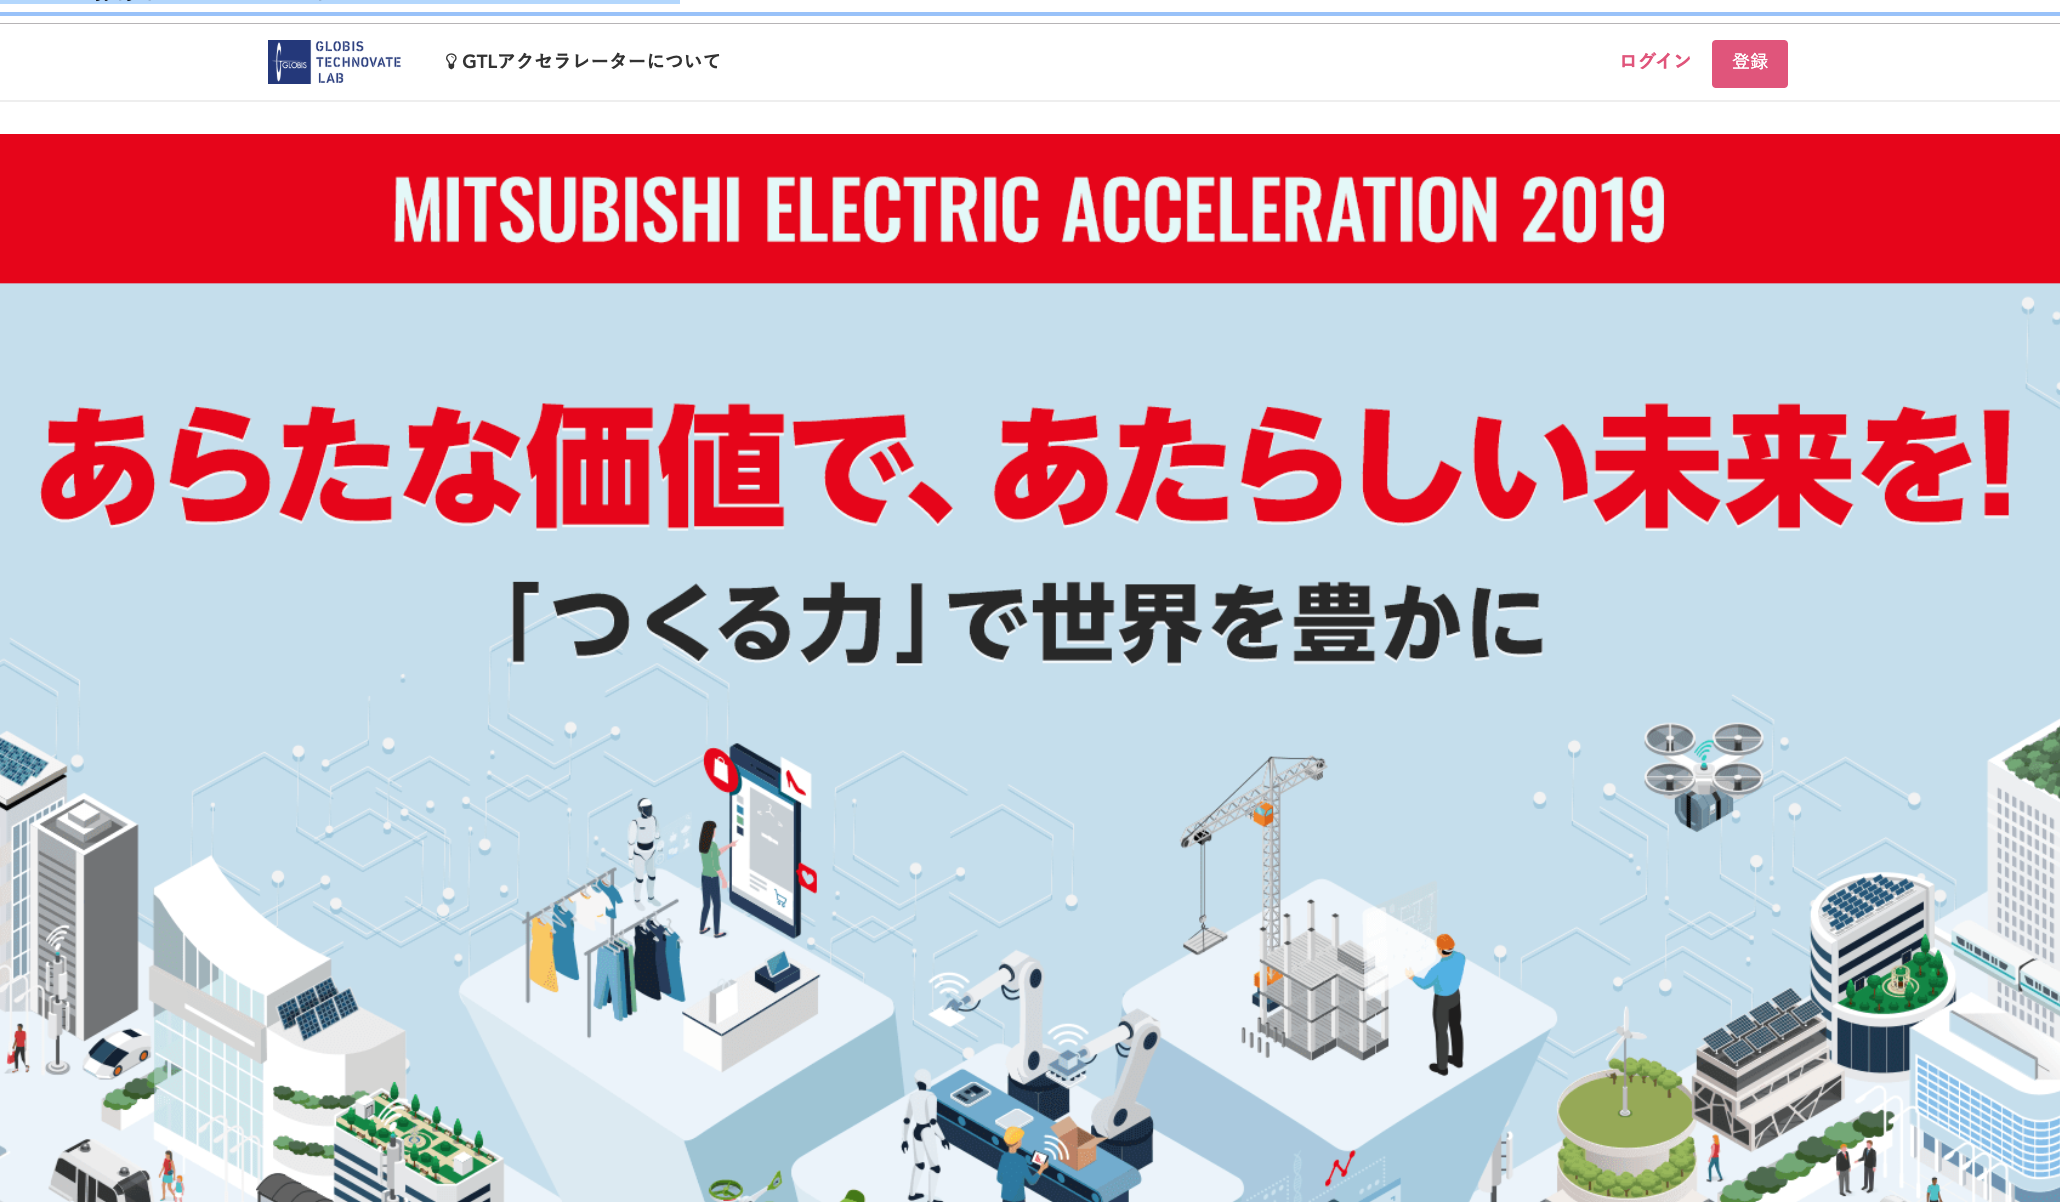 Hacarus Joins The Mitsubishi Electric Accelerator 2019 Program